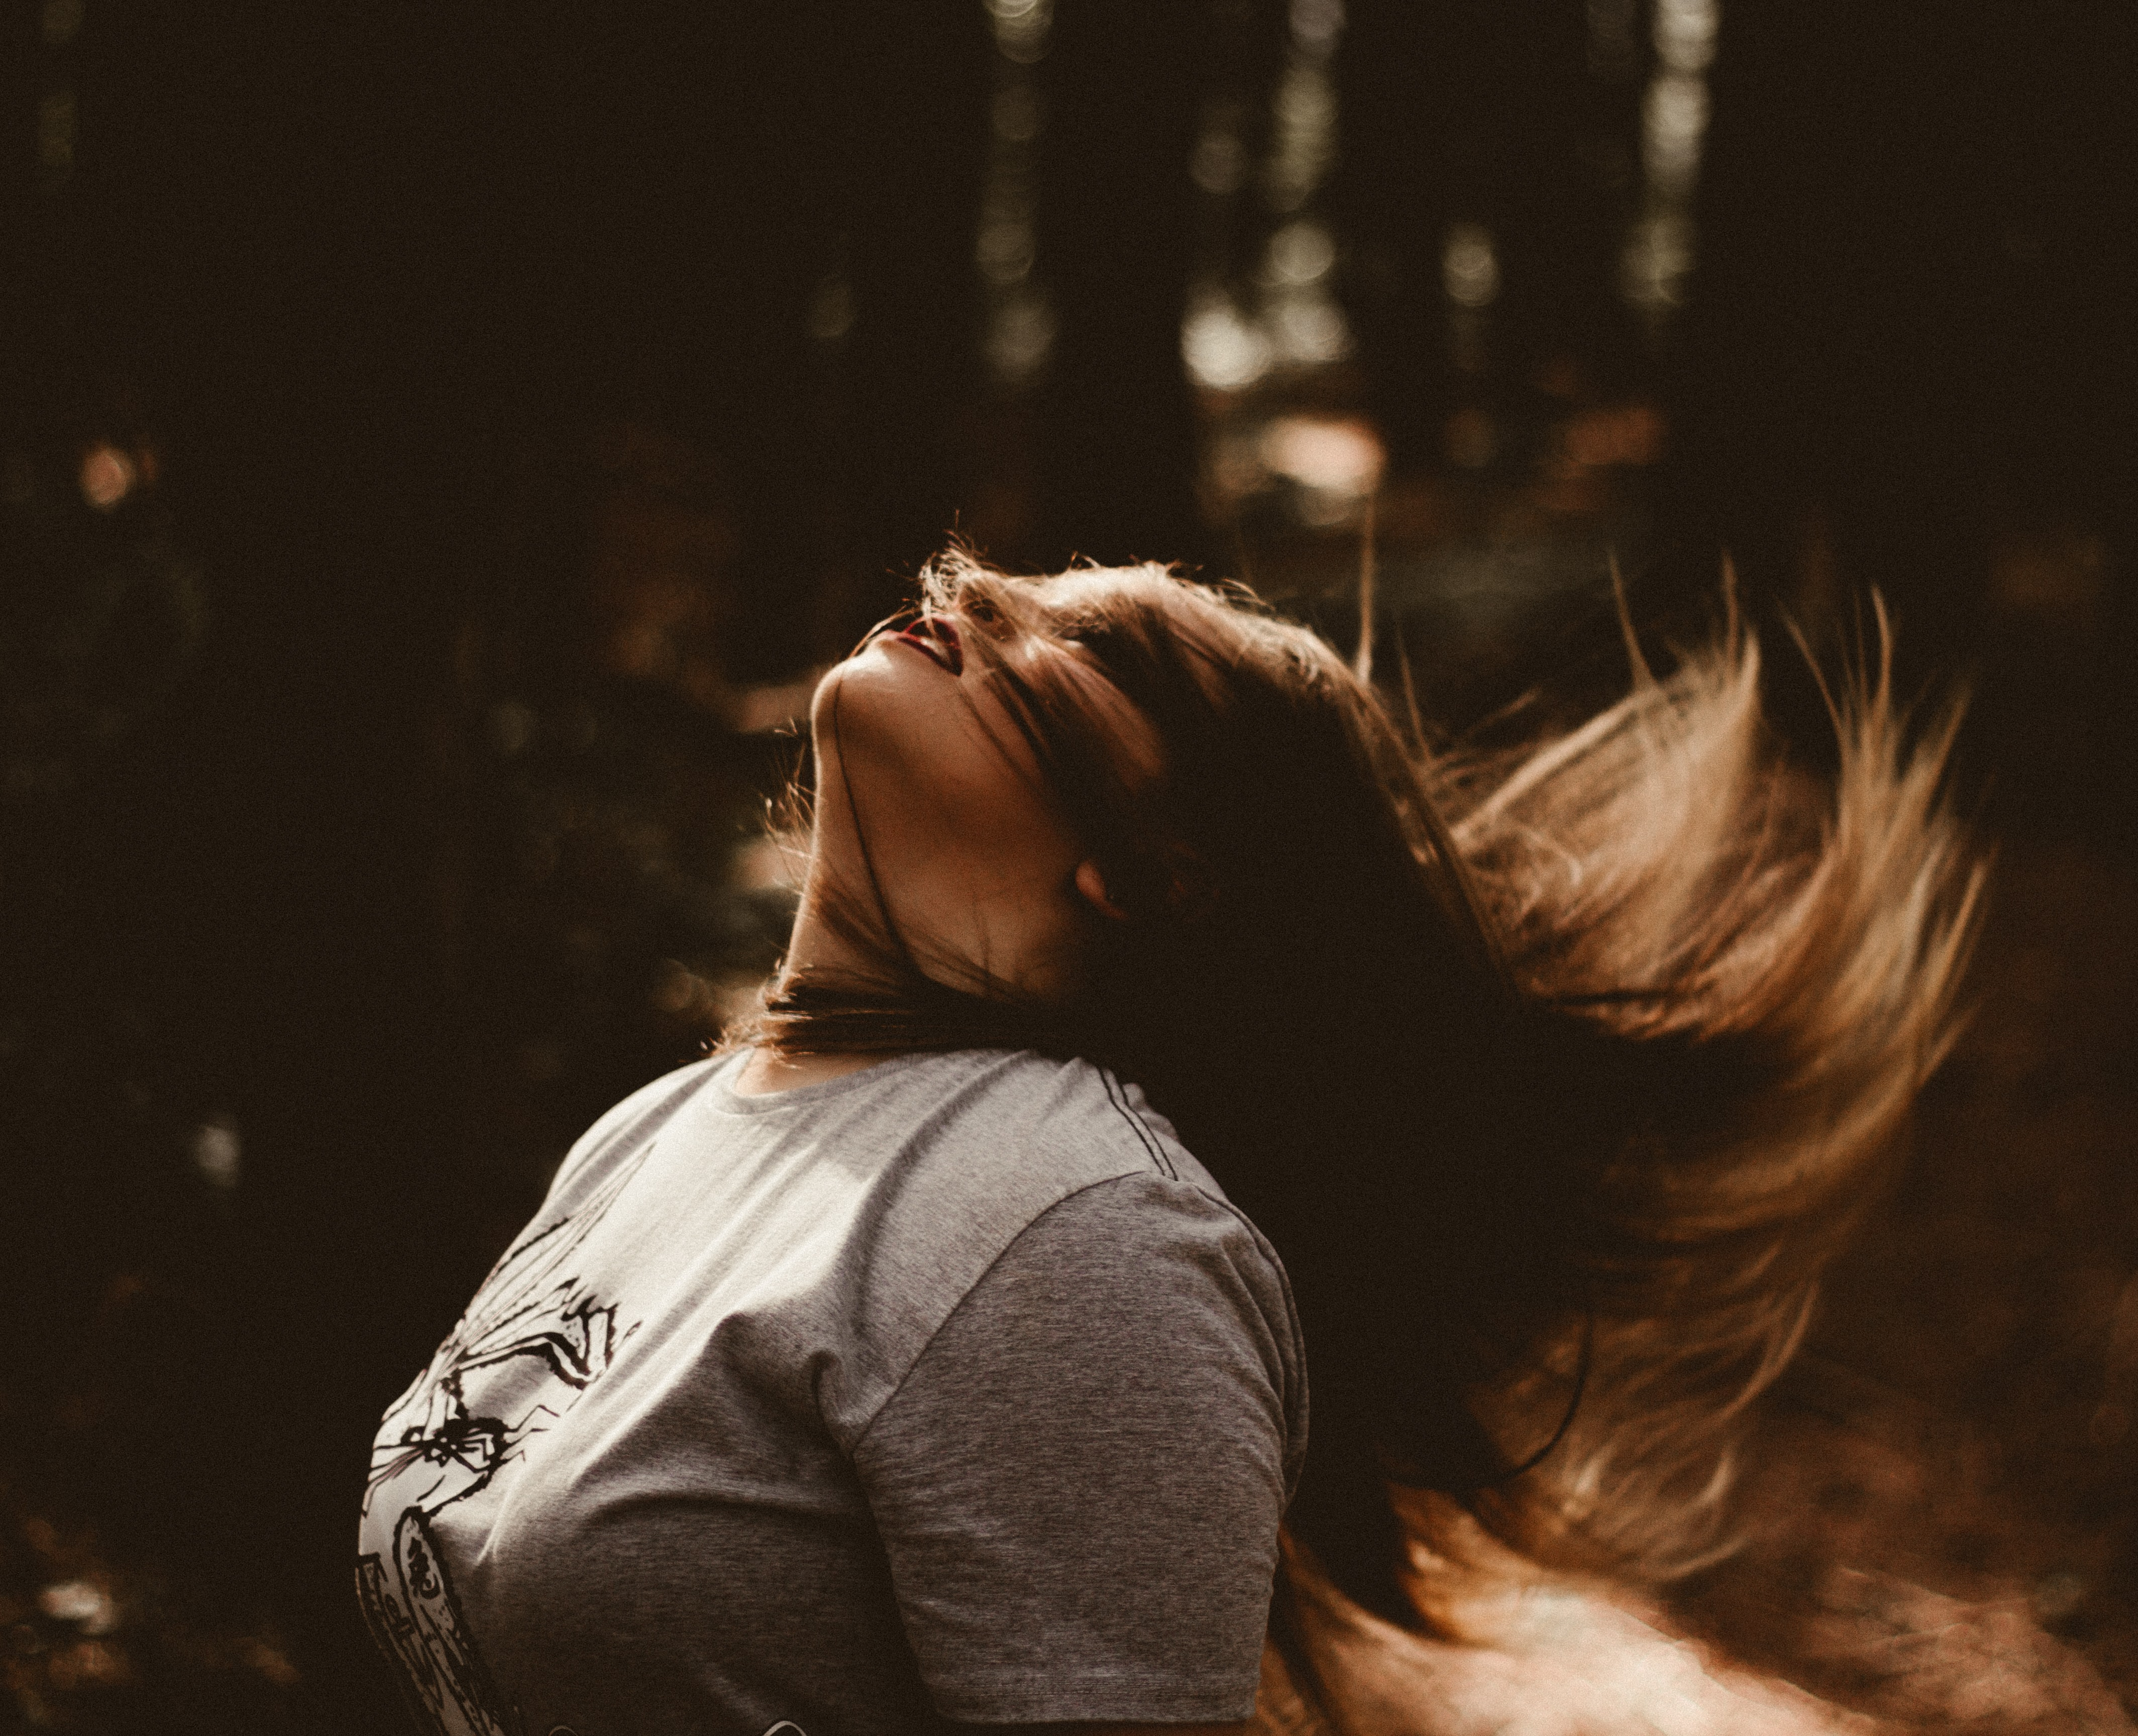 Woman flips hair back in the woods